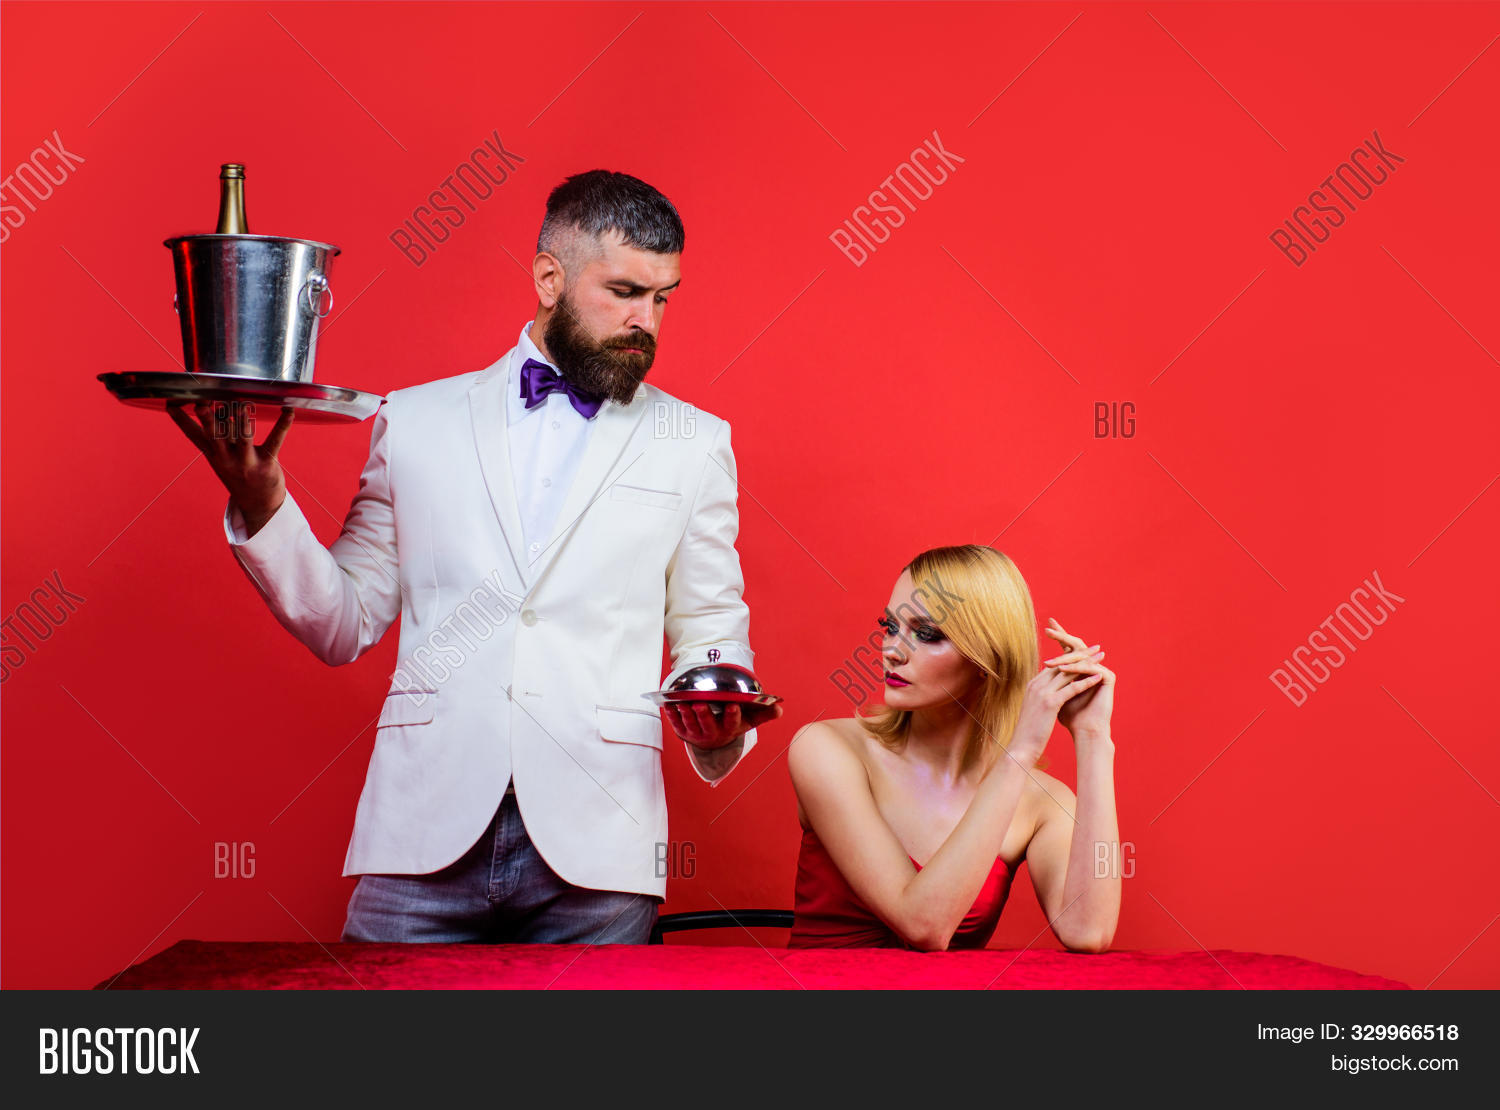 Waiter Serving Food Image Photo Free Trial Bigstock